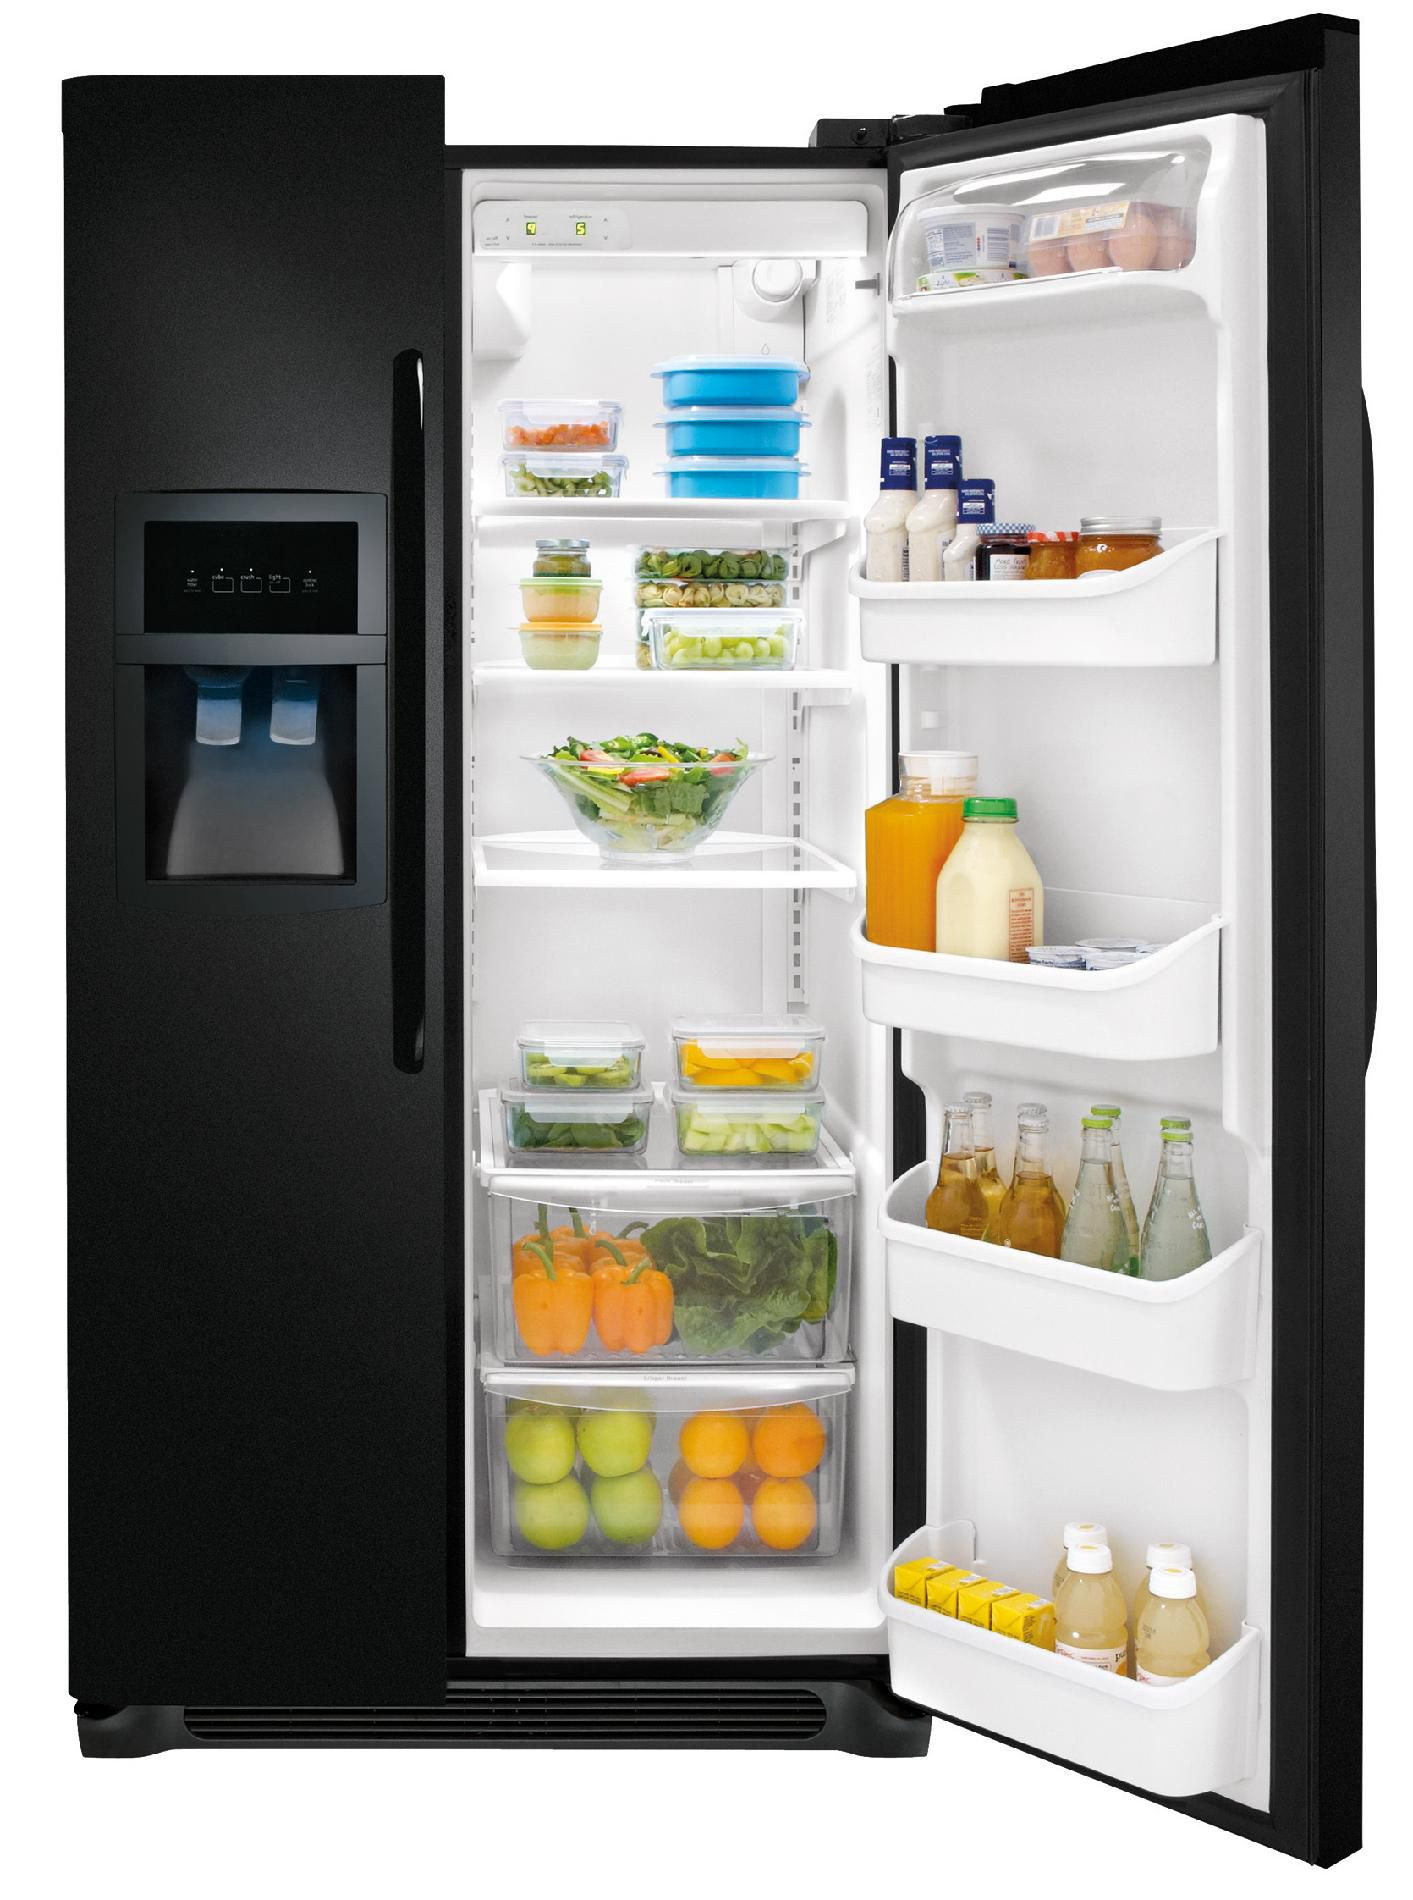 FRIGIDAIRE  26 cu. ft. Side-by-Side Refrigerator - Black